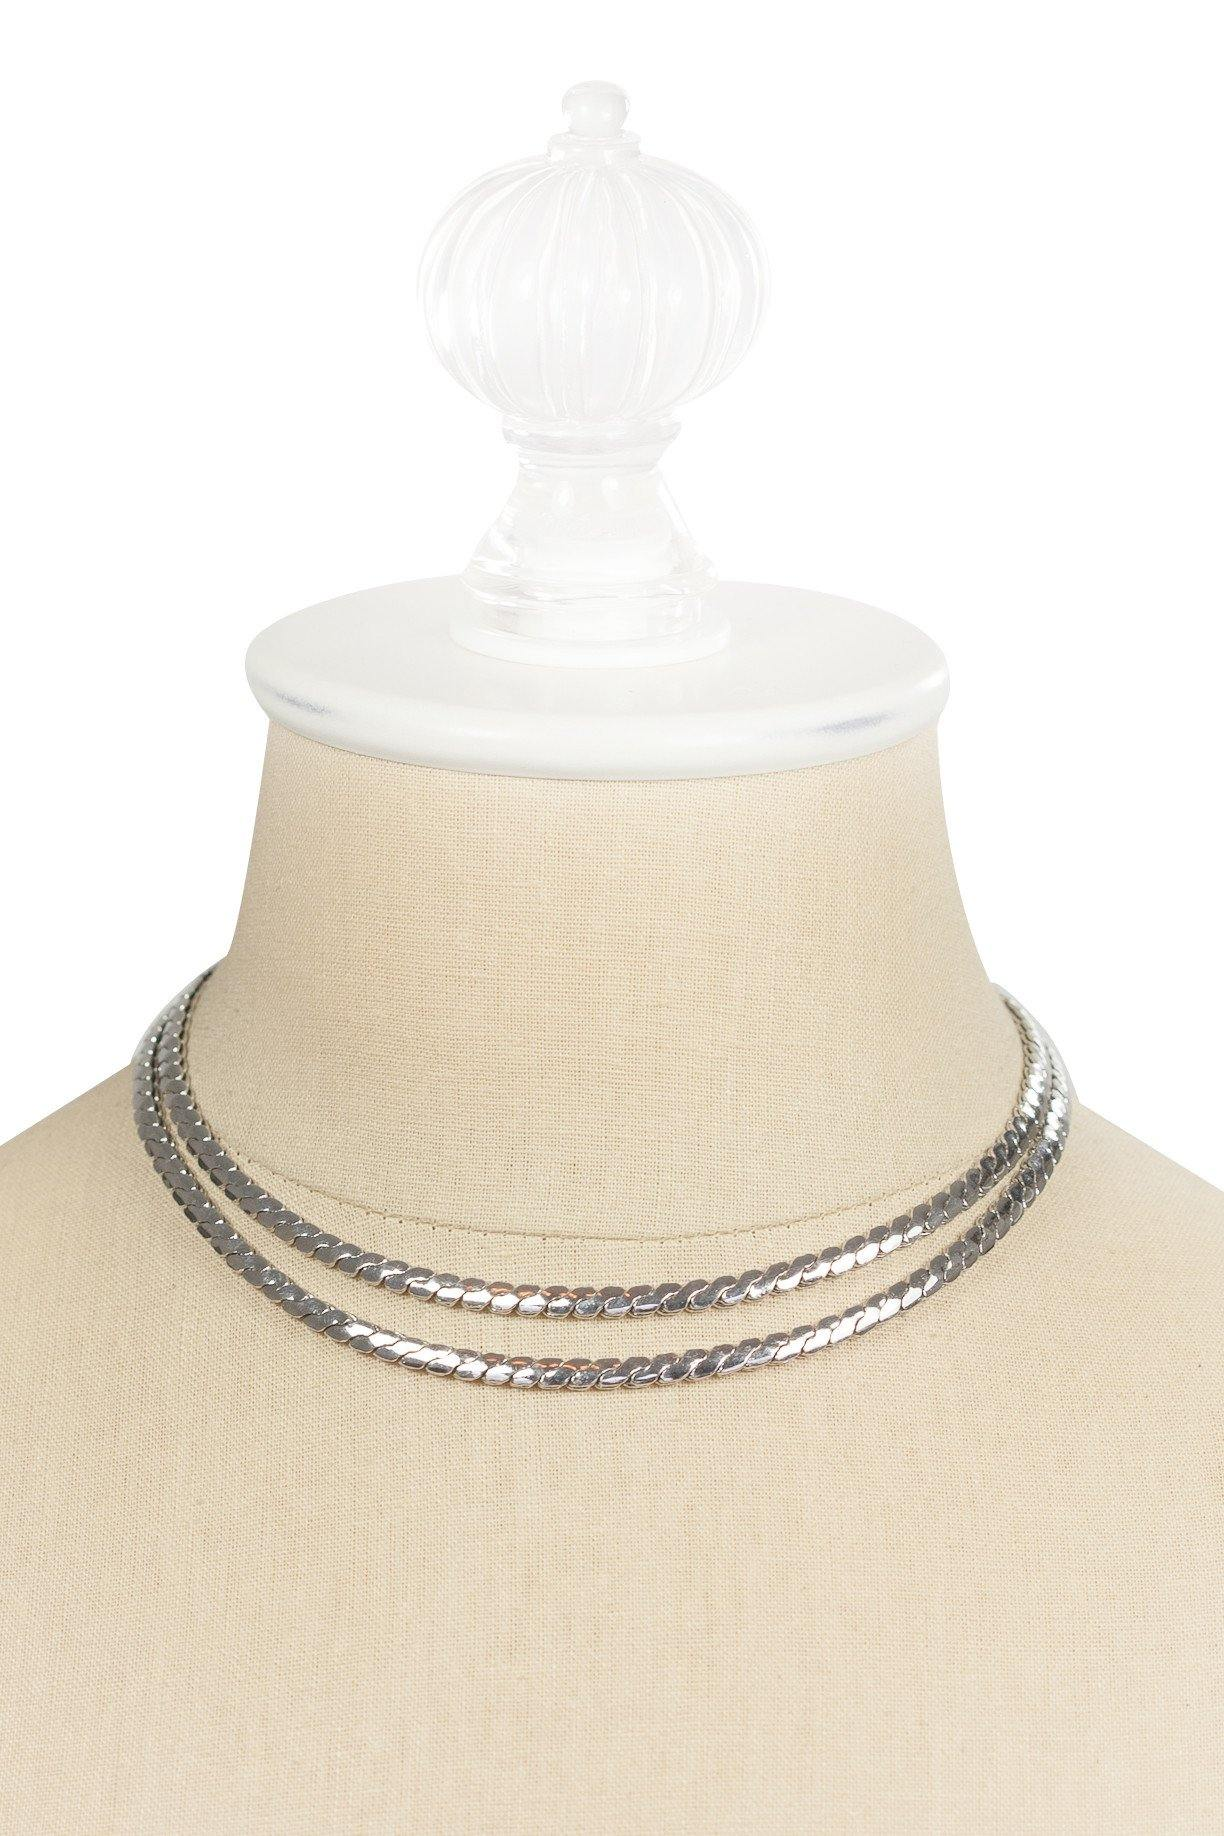 50's__Coro__Edgy Silver Necklace